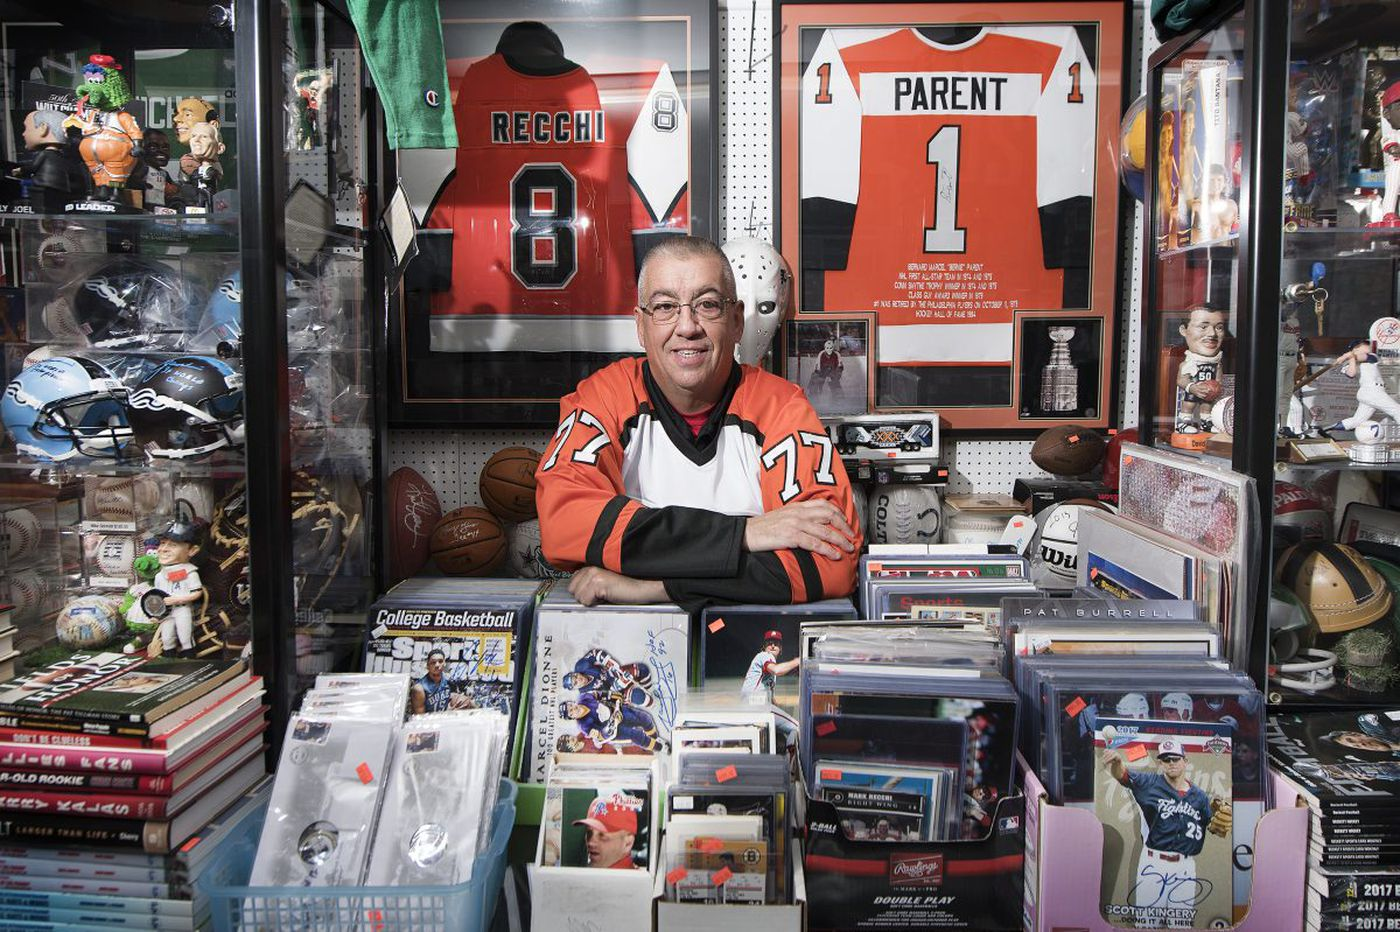 Carl's Cards owner has hosted more than 600 Philly sports celebs | We the People